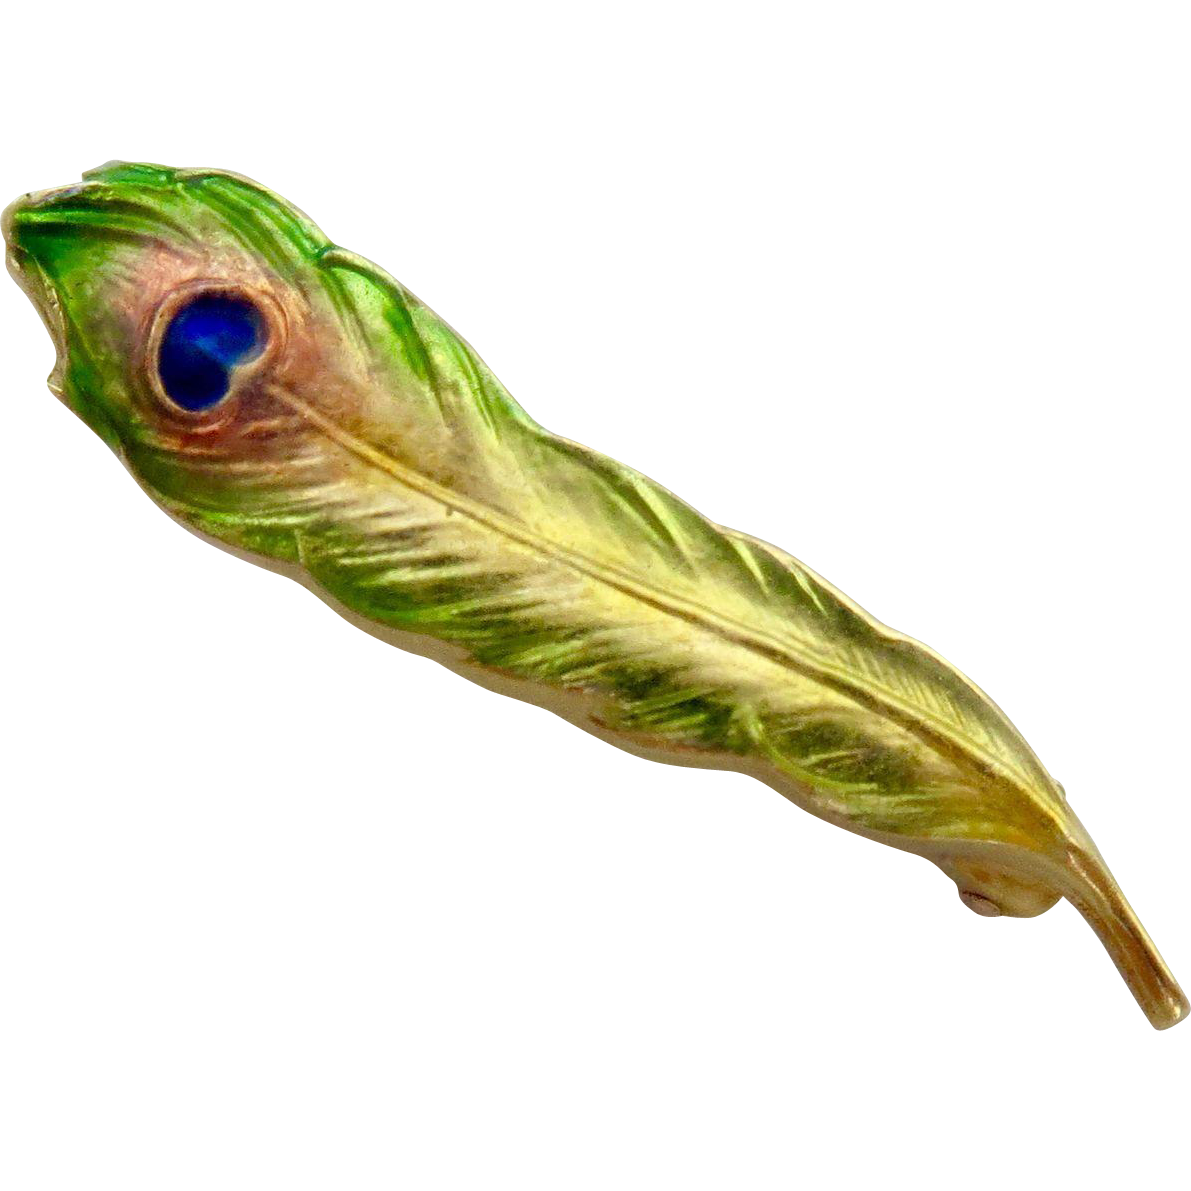 Rare Art Nouveau Krementz Peacock Feather Enamel 14k Lingerie Pin